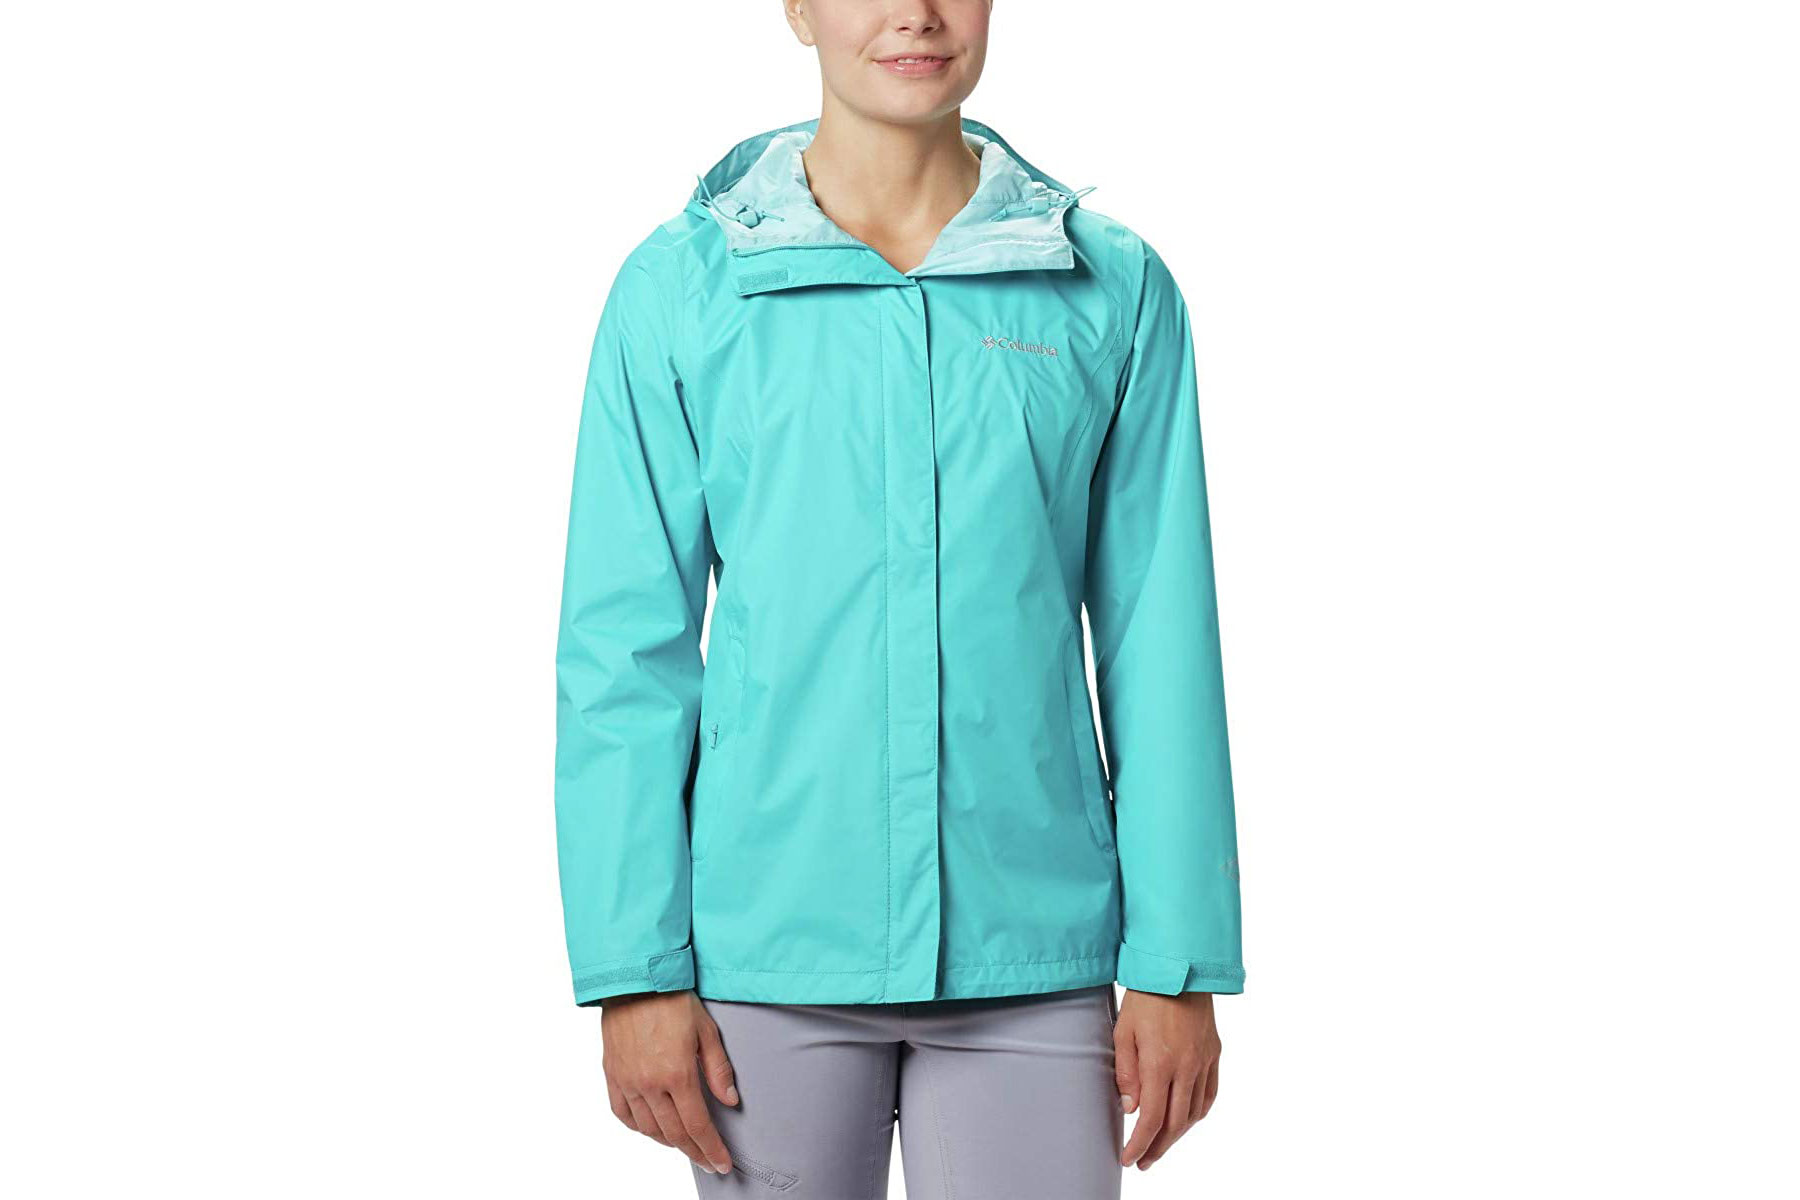 Women's light blue rain jacket